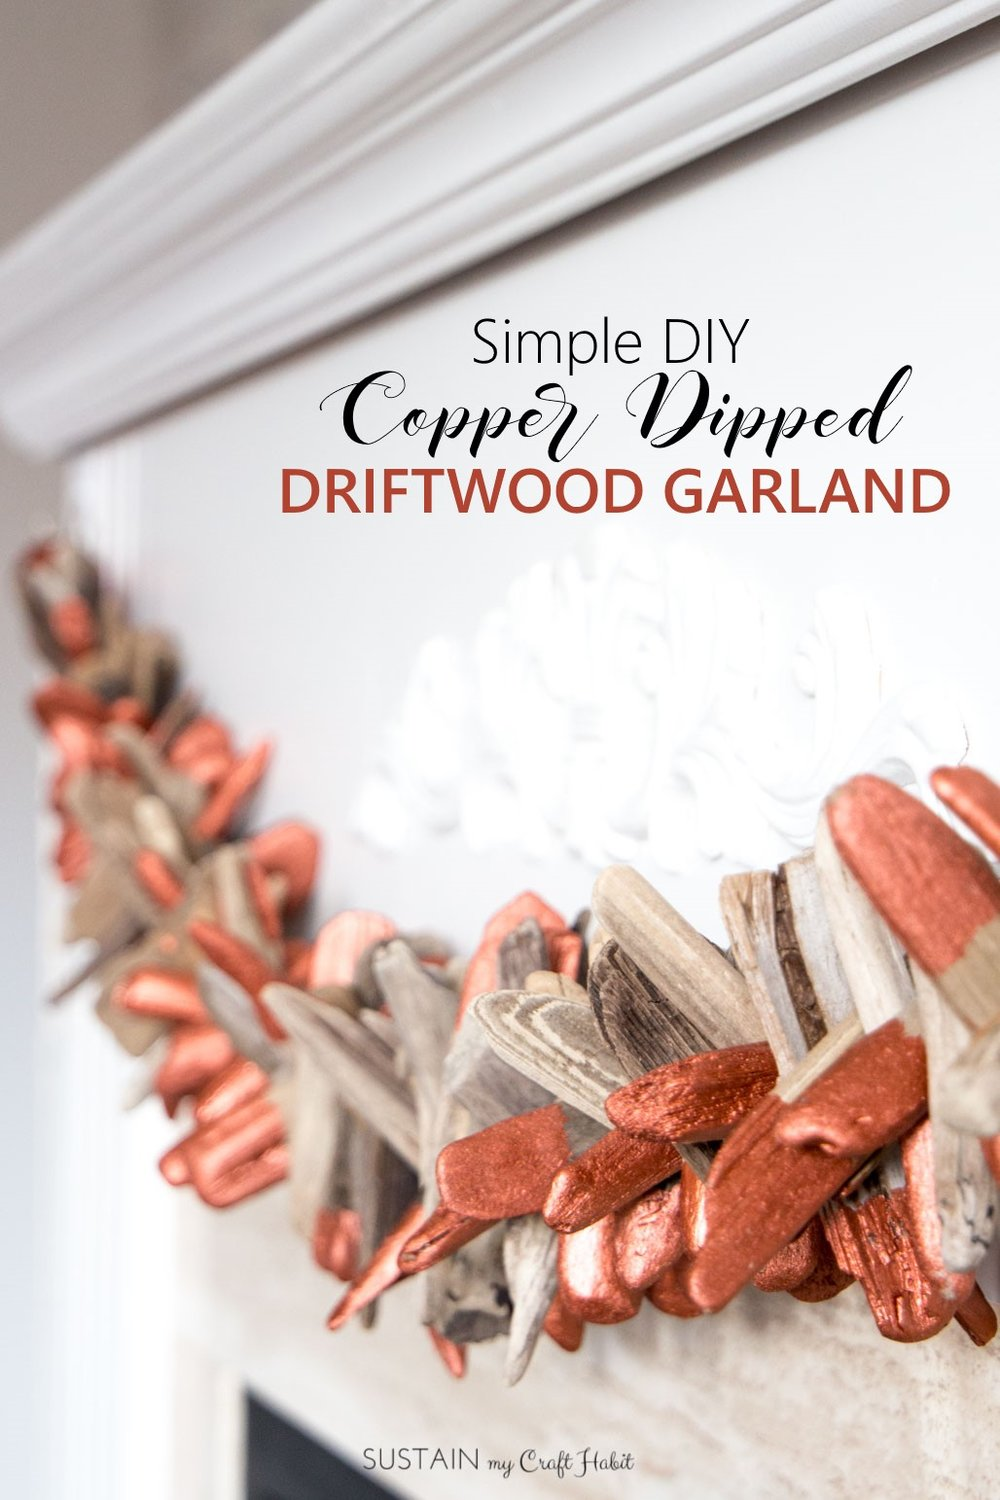 Easy DIY driftwood garland | Tutorial for a modern copper-dipped garland made with drift wood | Unique coastal home decor idea